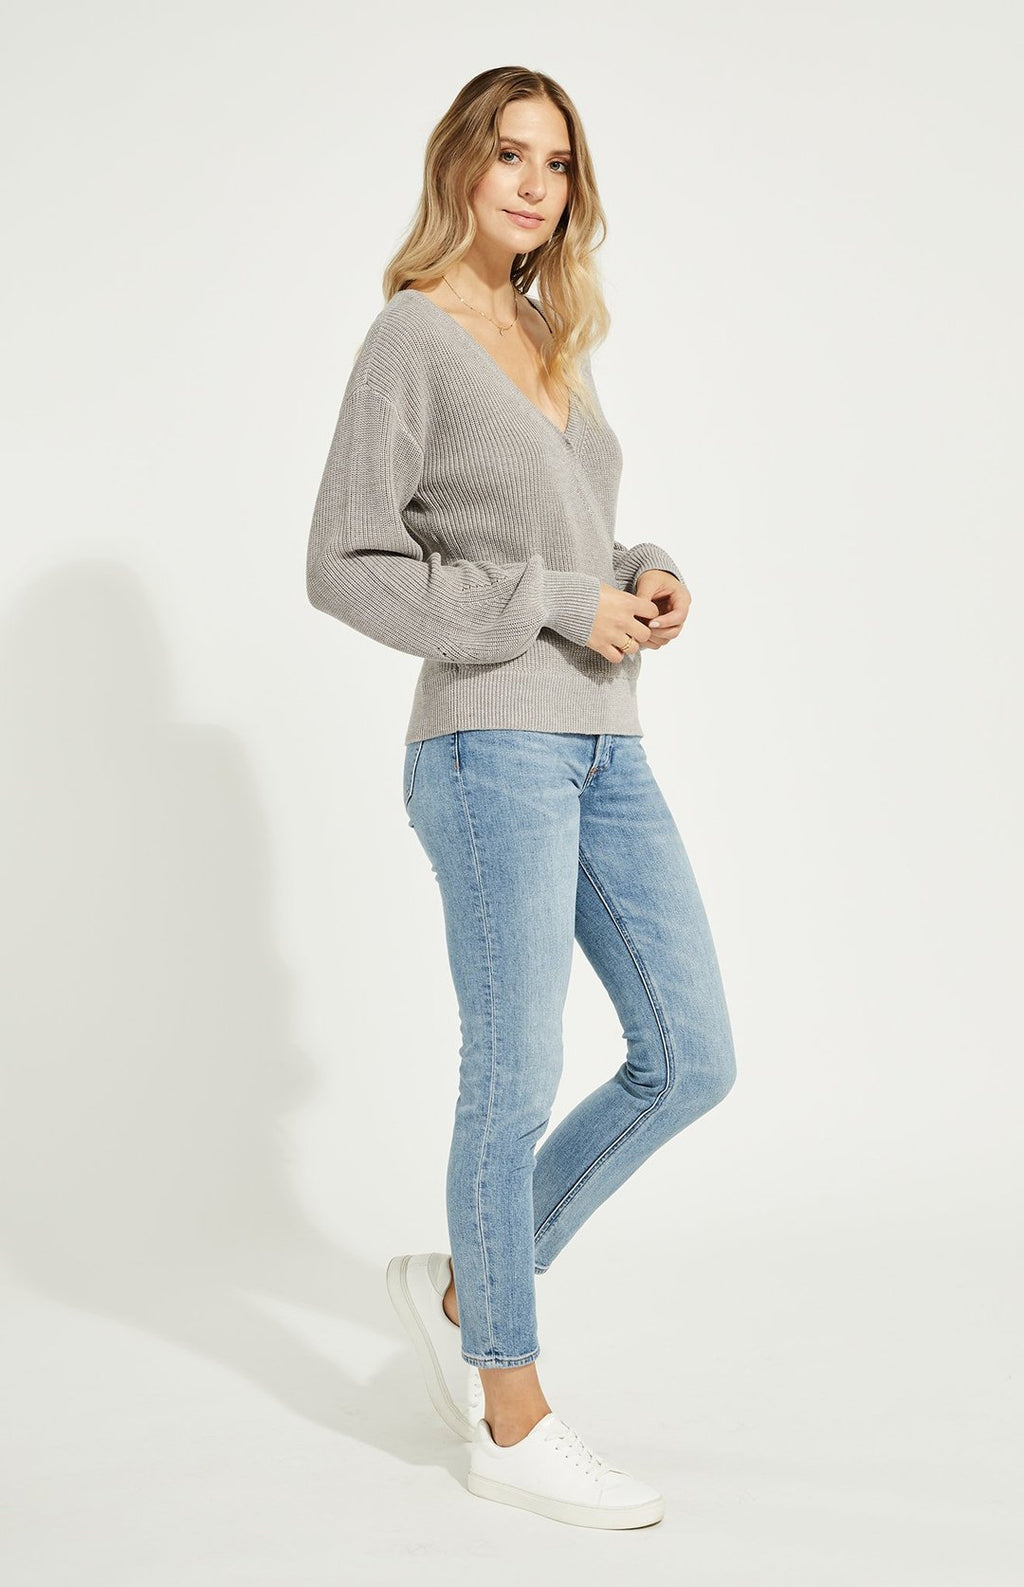 The Camille Pullover